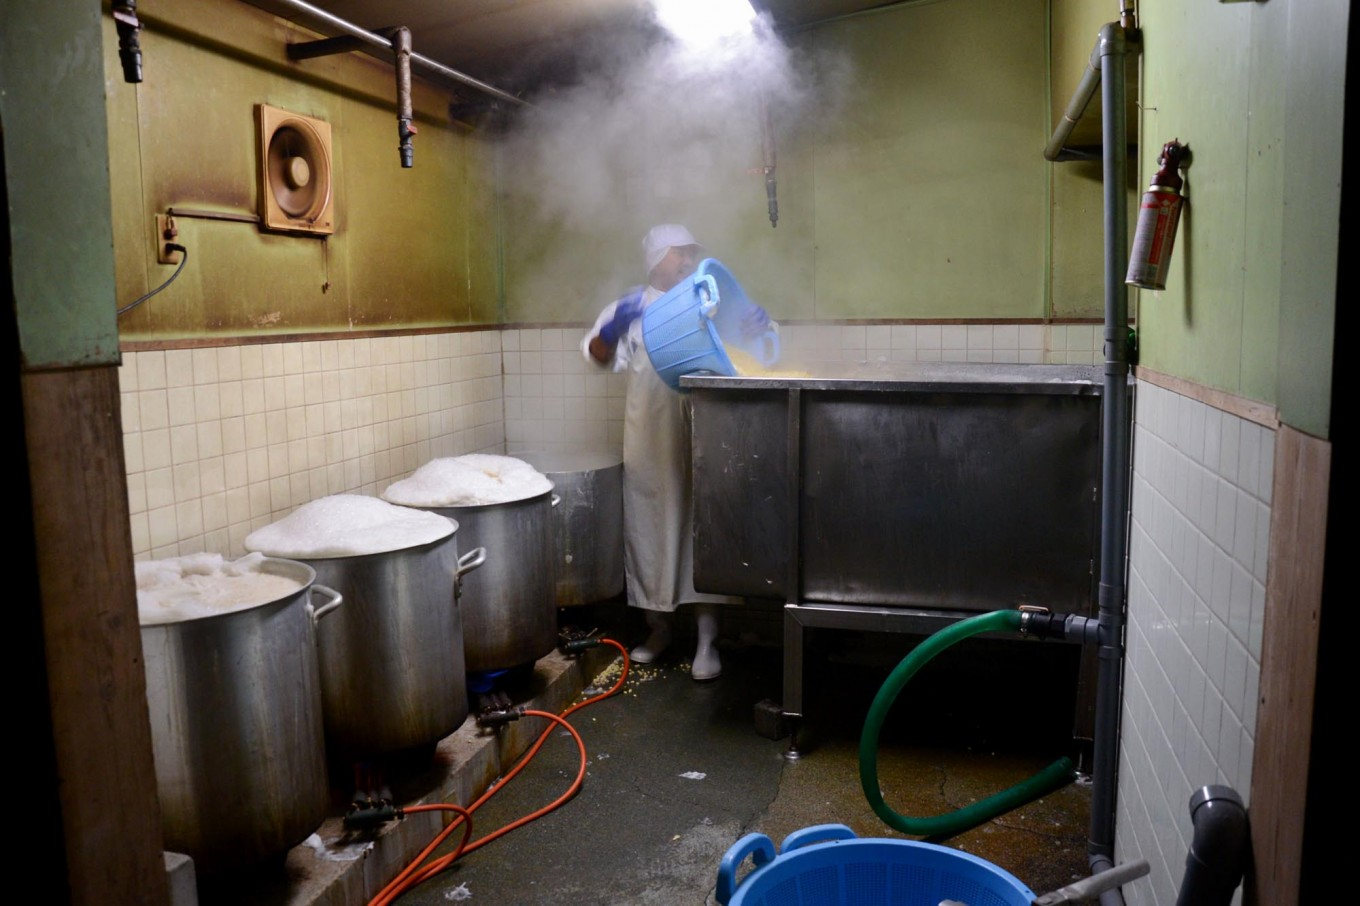 To get the best tempeh, Rustono boils the soy beans all night. JP/Tarko Sudiarno